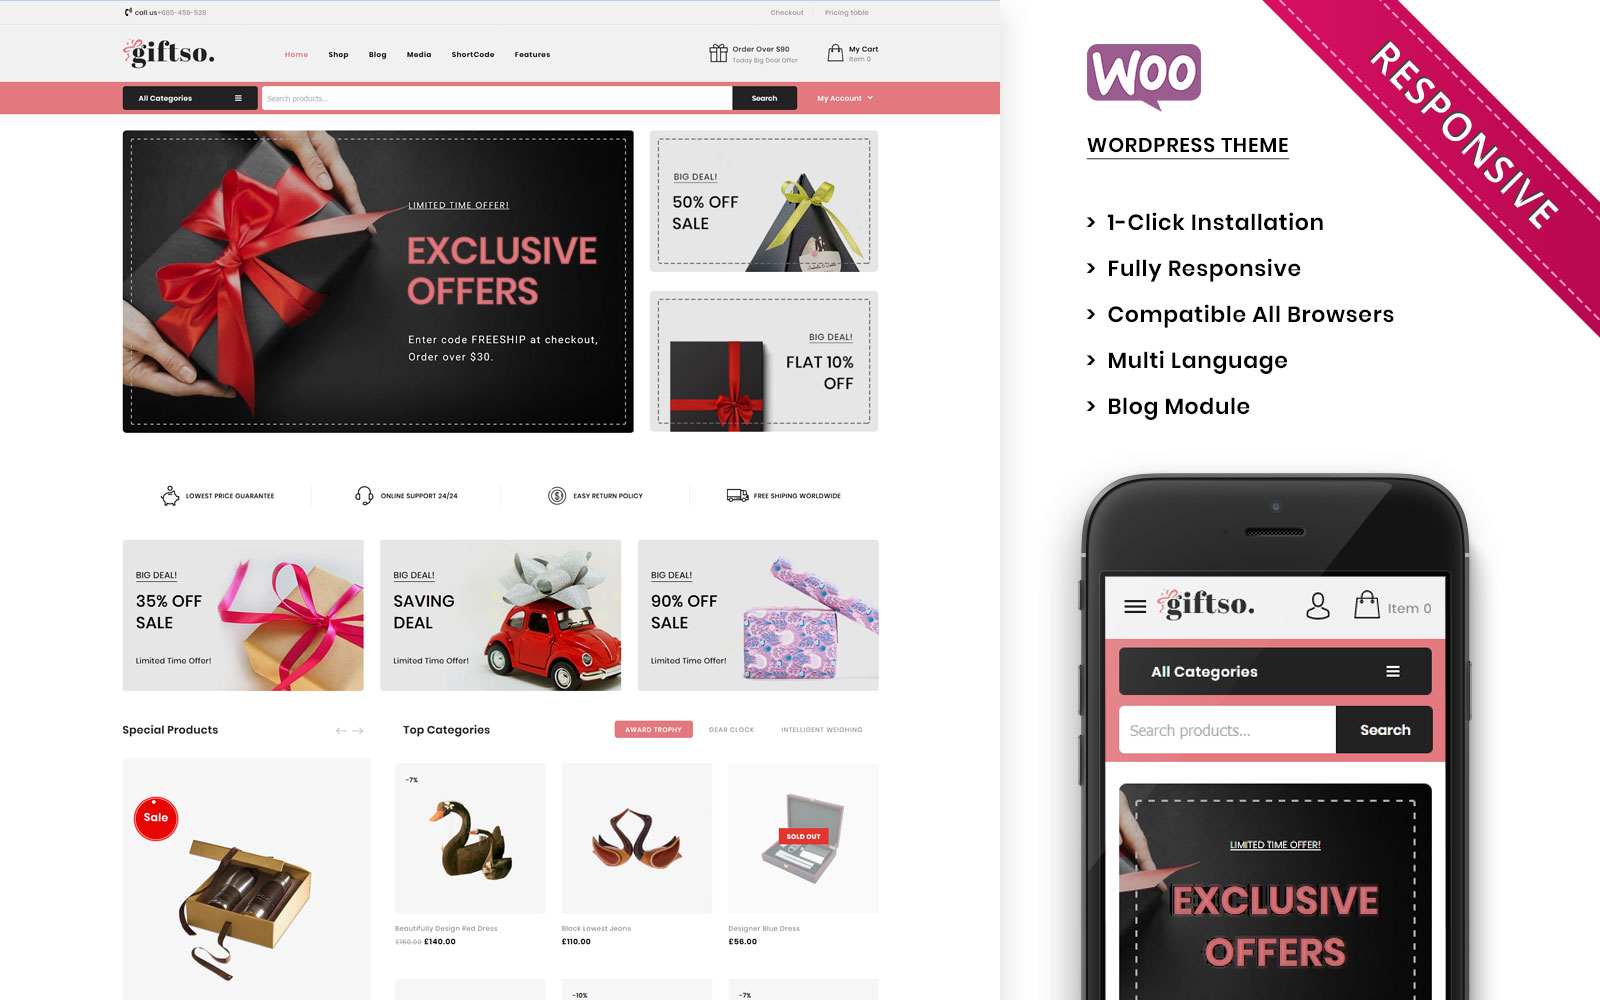 Giftso - The Gift Store Responsive WooCommerce Theme